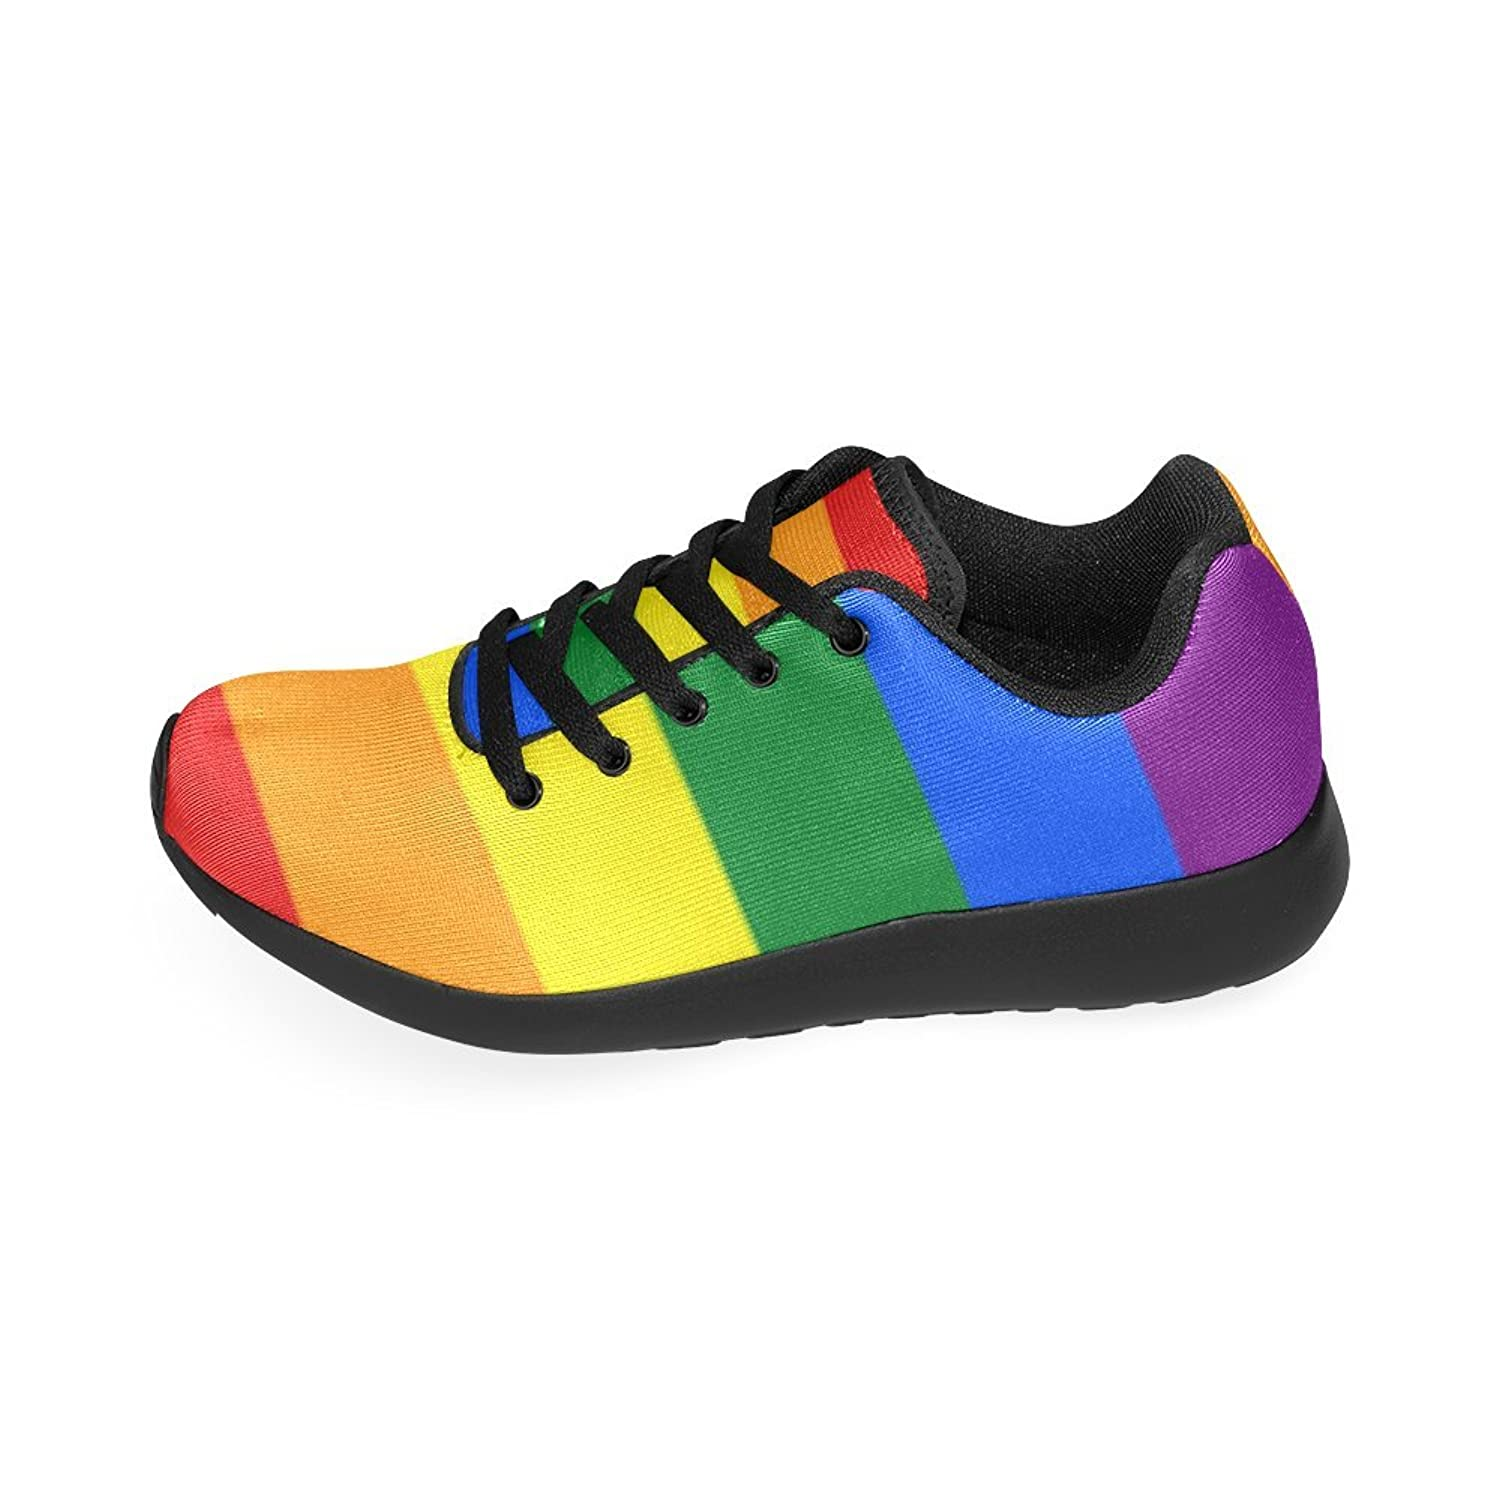 f6161c35a55d 80%OFF Custom Running Shoes Gay Pride Rainbow Flag Stripes Women¡¯s  Running. Go to Top